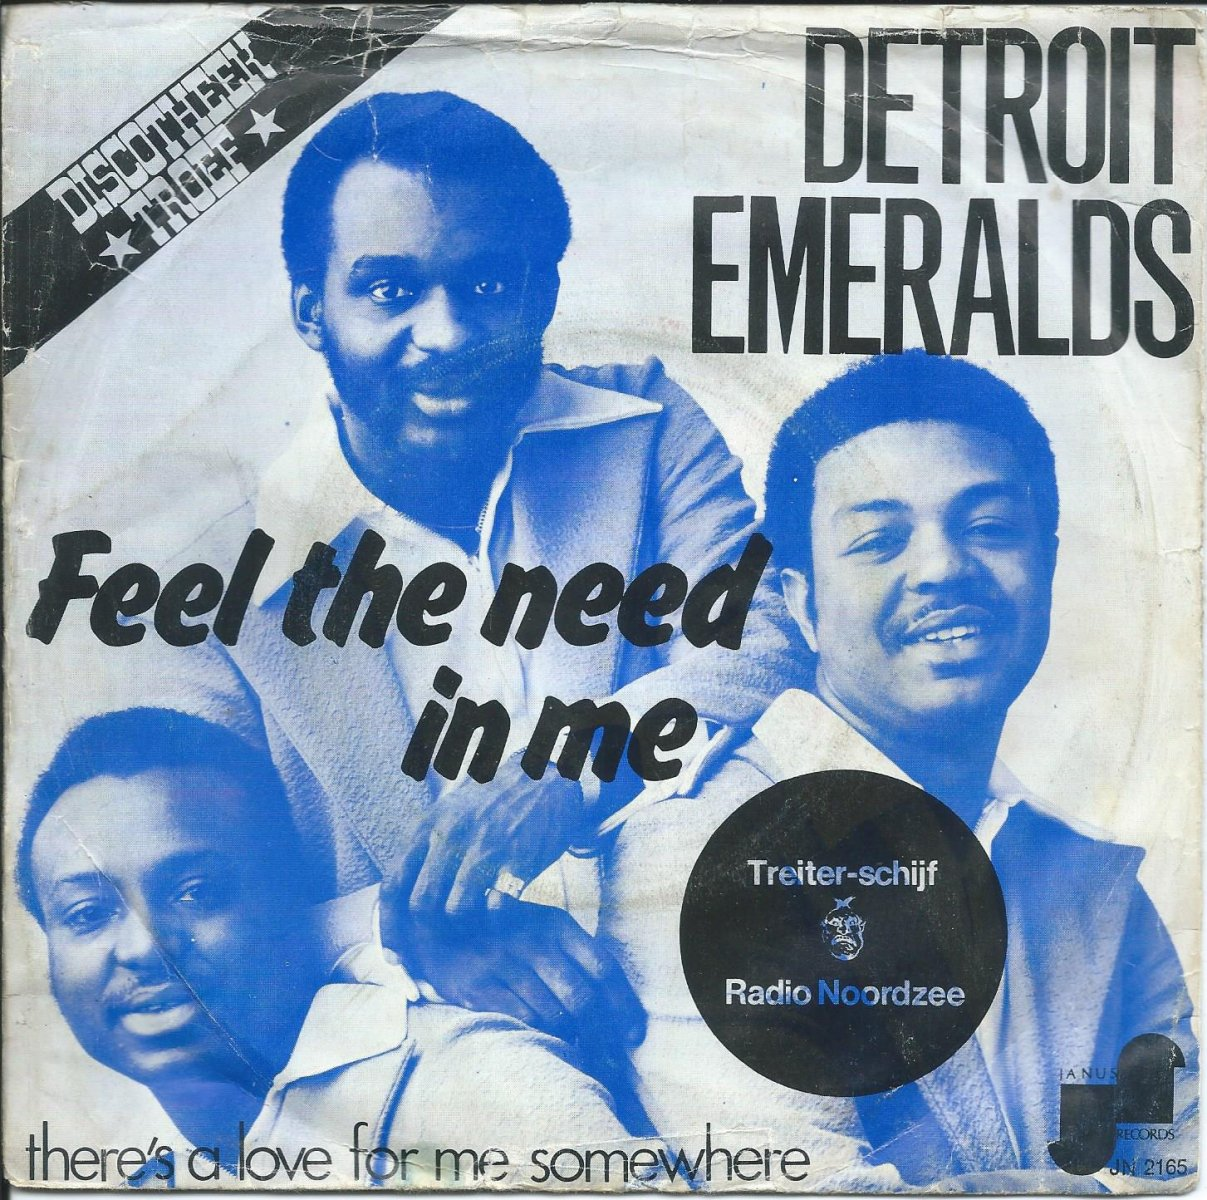 DETROIT EMERALDS / FEEL THE NEED IN ME / THERE'S A LOVE FOR ME SOMEWHERE (7